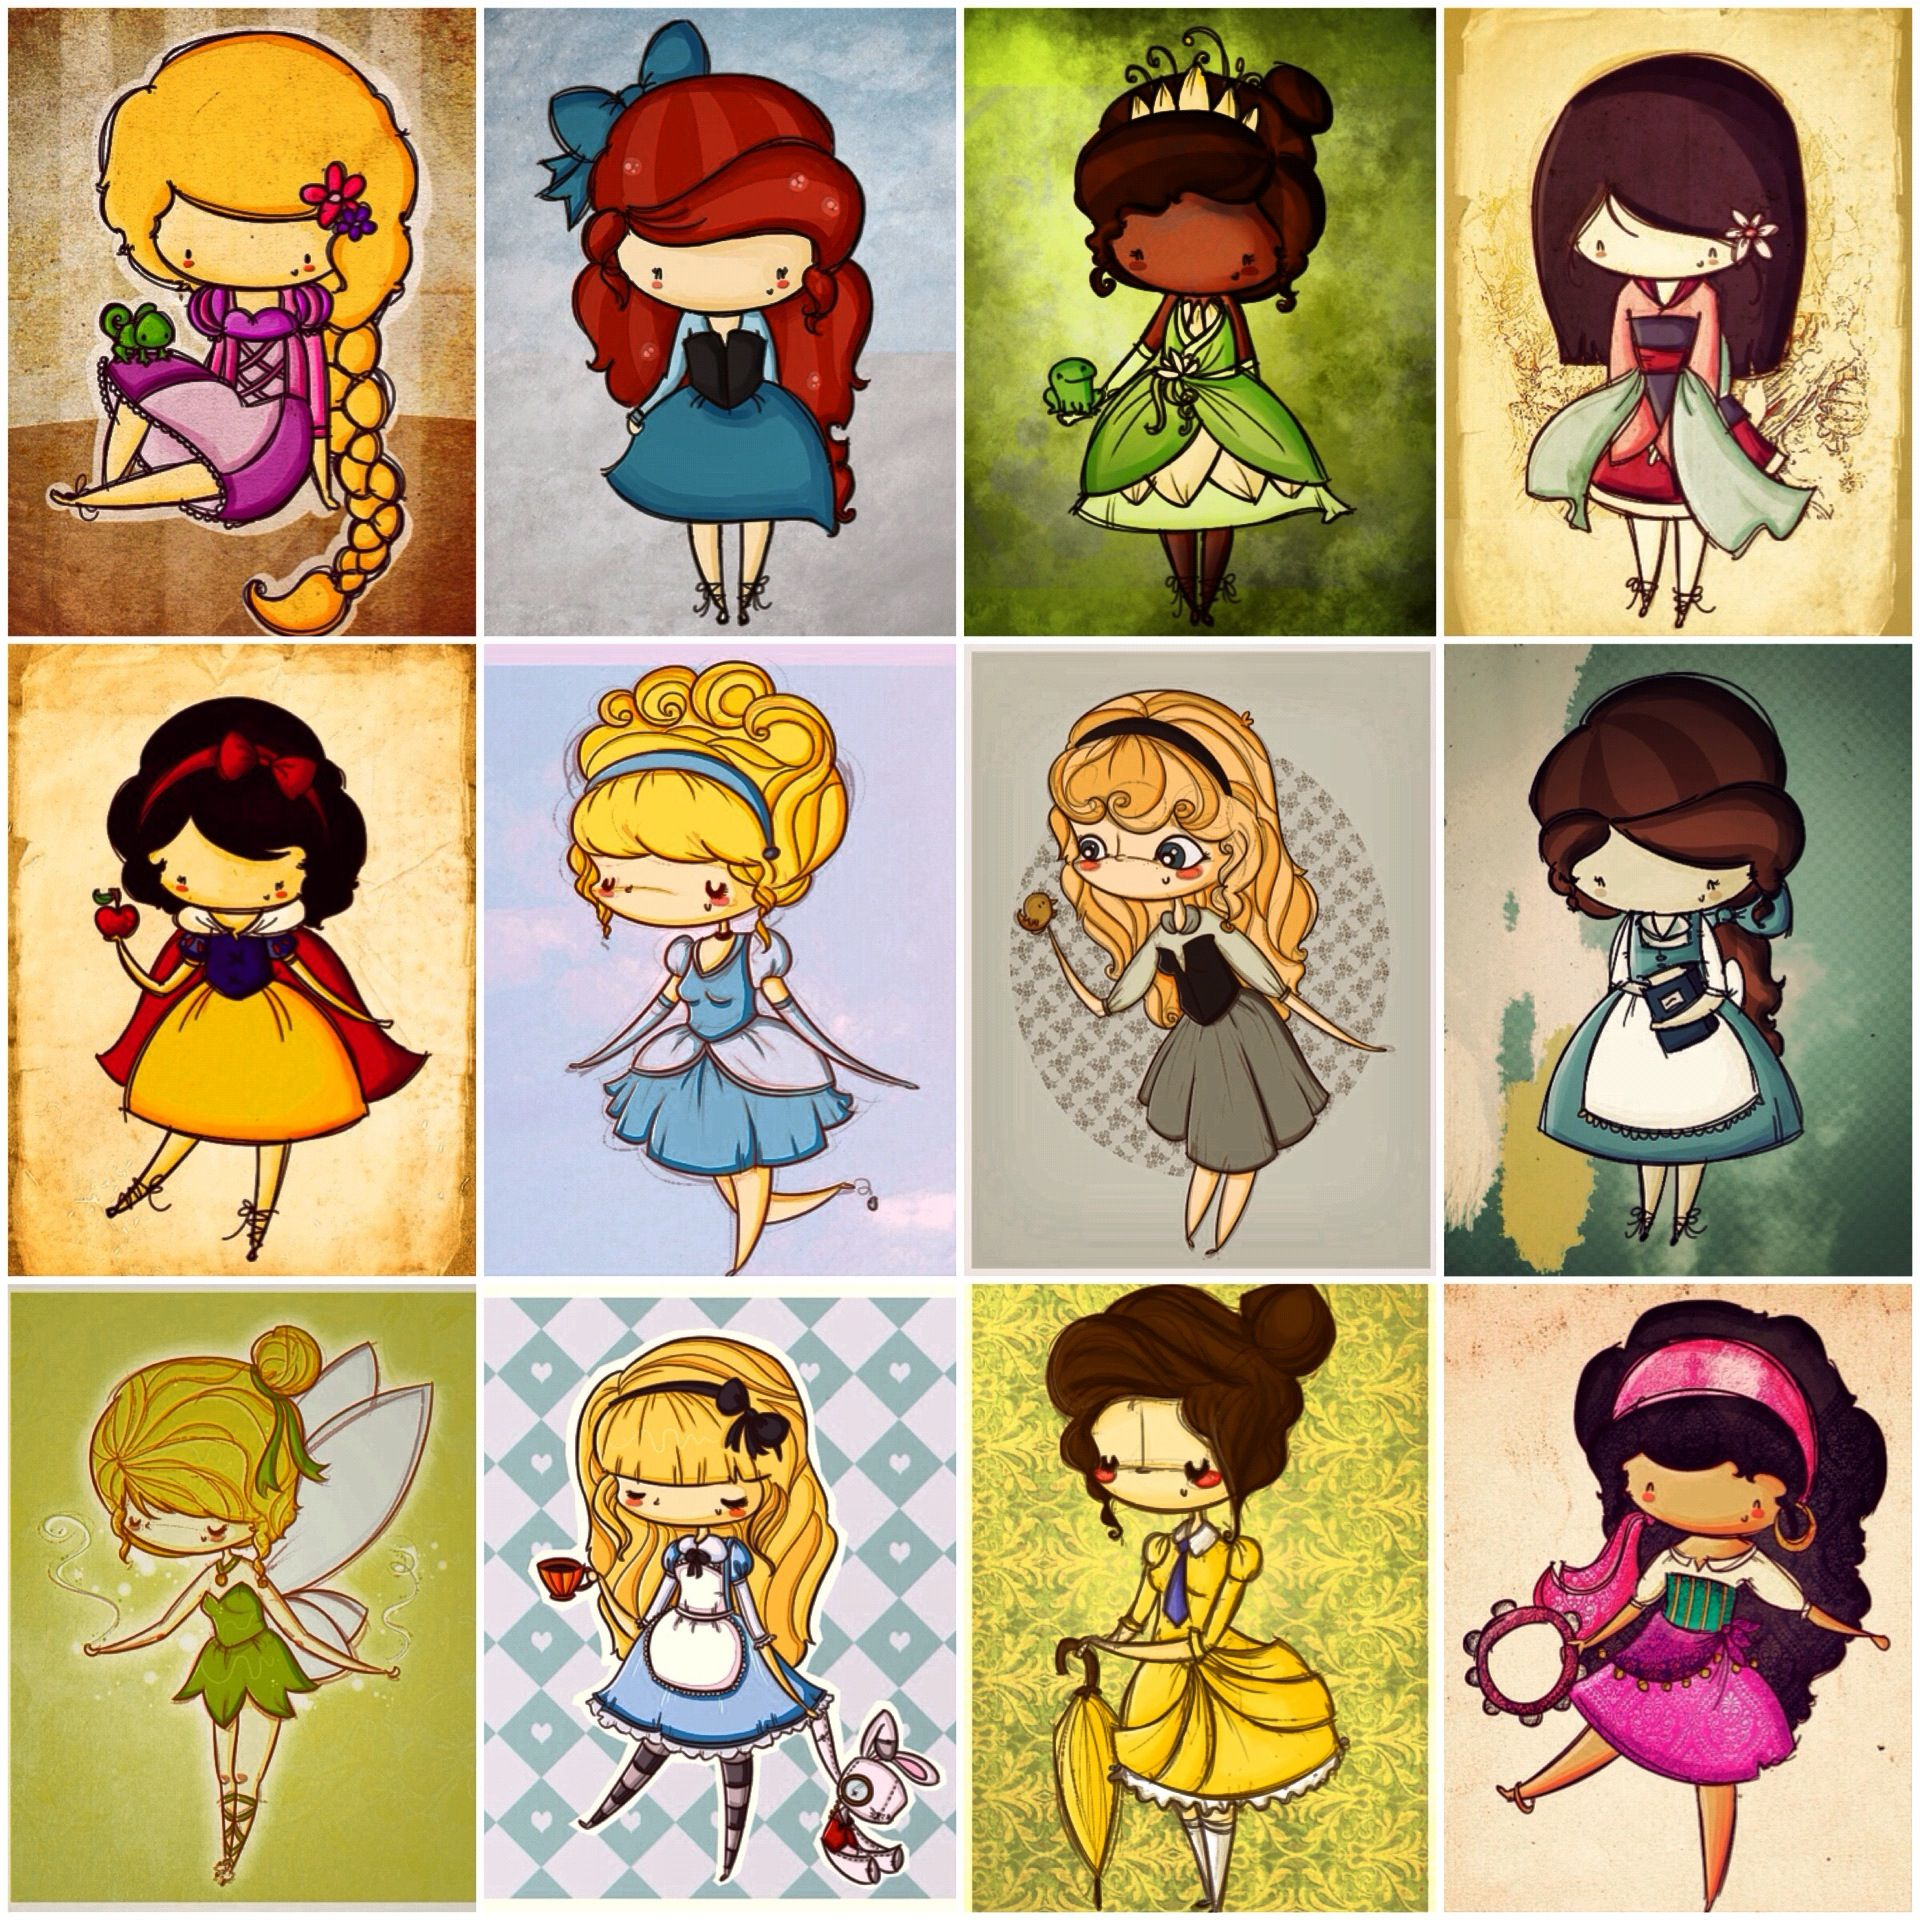 cute chibi disney princesses!